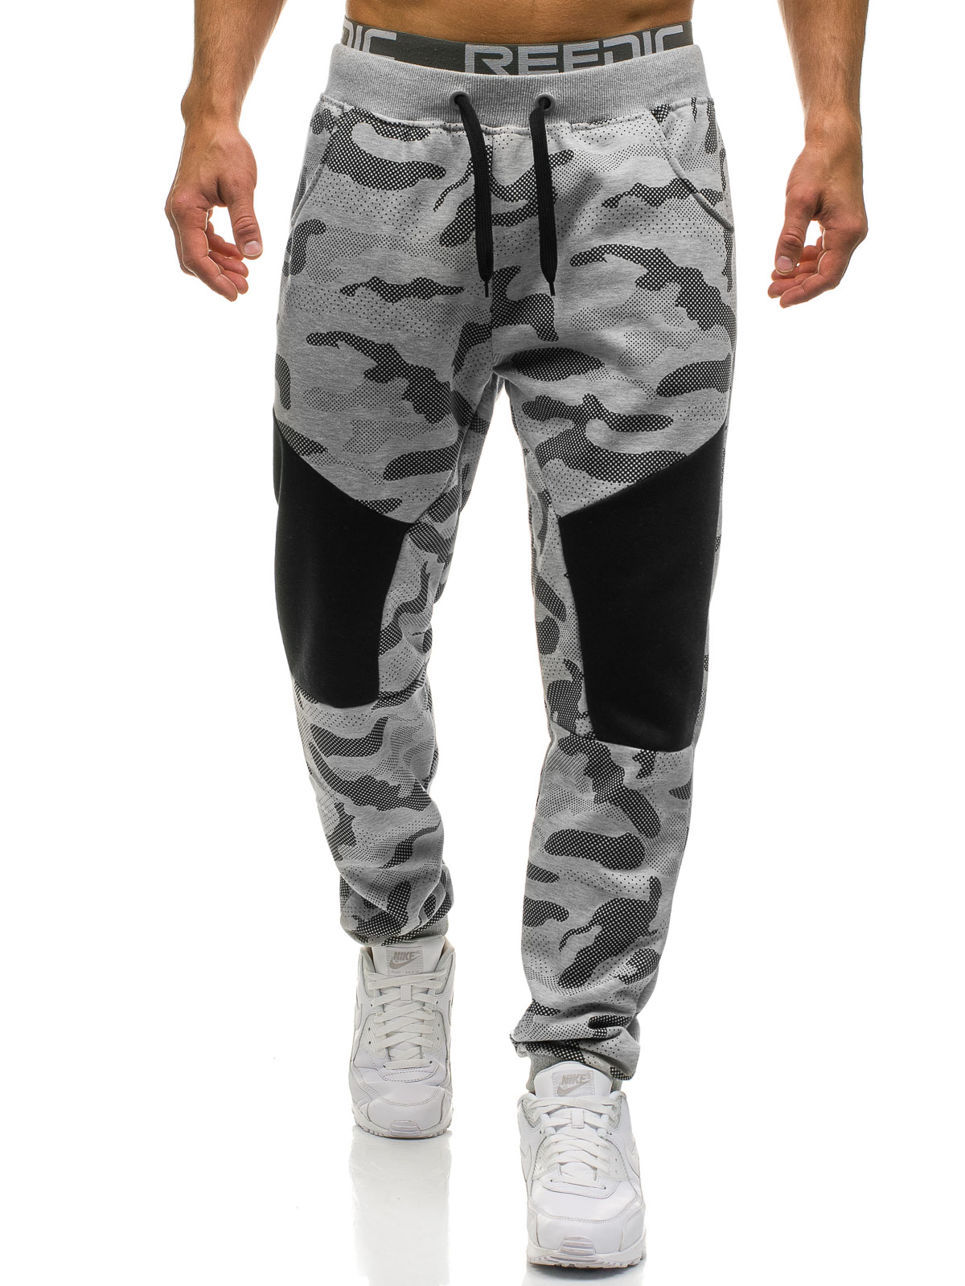 2019 New Stretch Sweatpants Men Camo Jogger Pants Men's Trousers Camouflage Joggers Male Track Pants Mens Sweat Pants